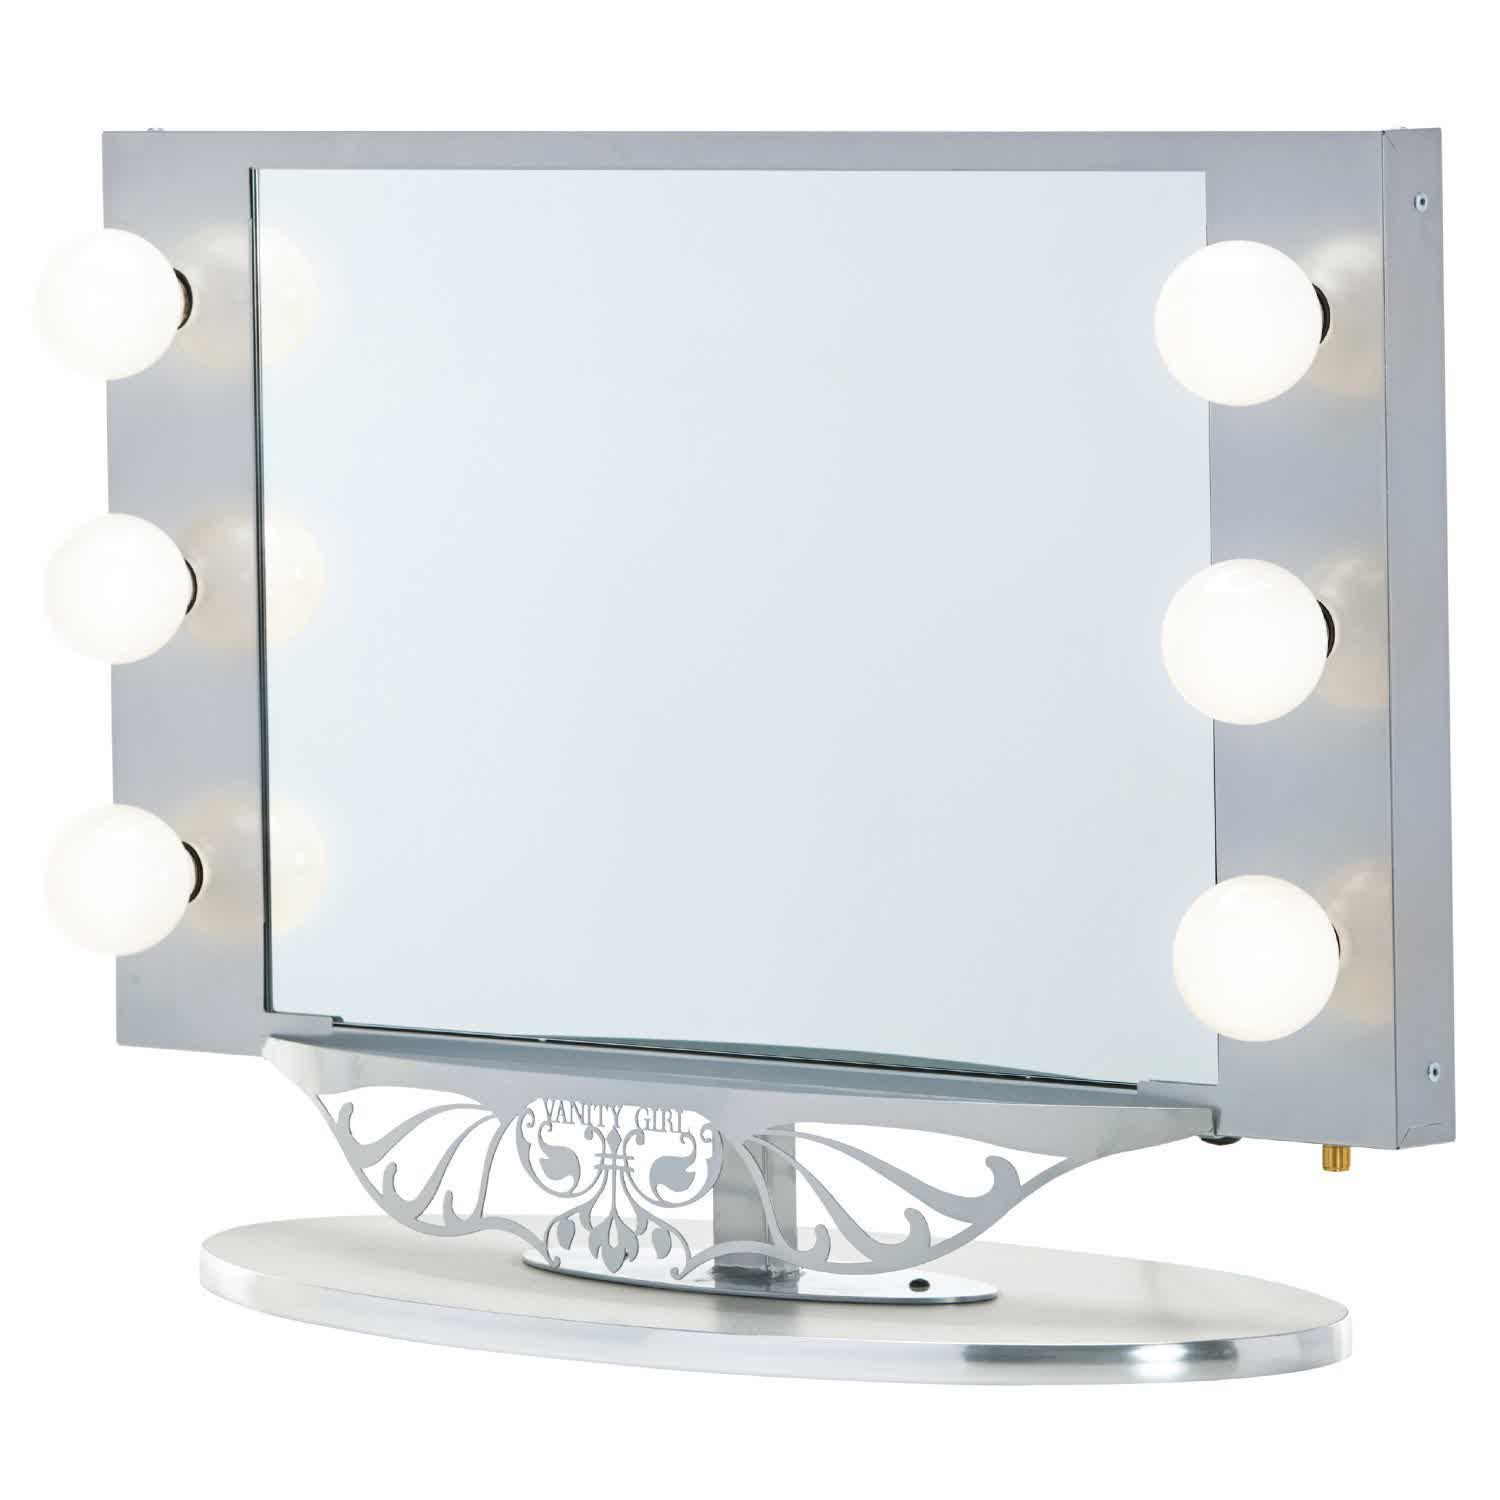 Vanity Mirror With Lights Sam S Club : Floating Starlet Lighted Vanity Mirror Feel The Home